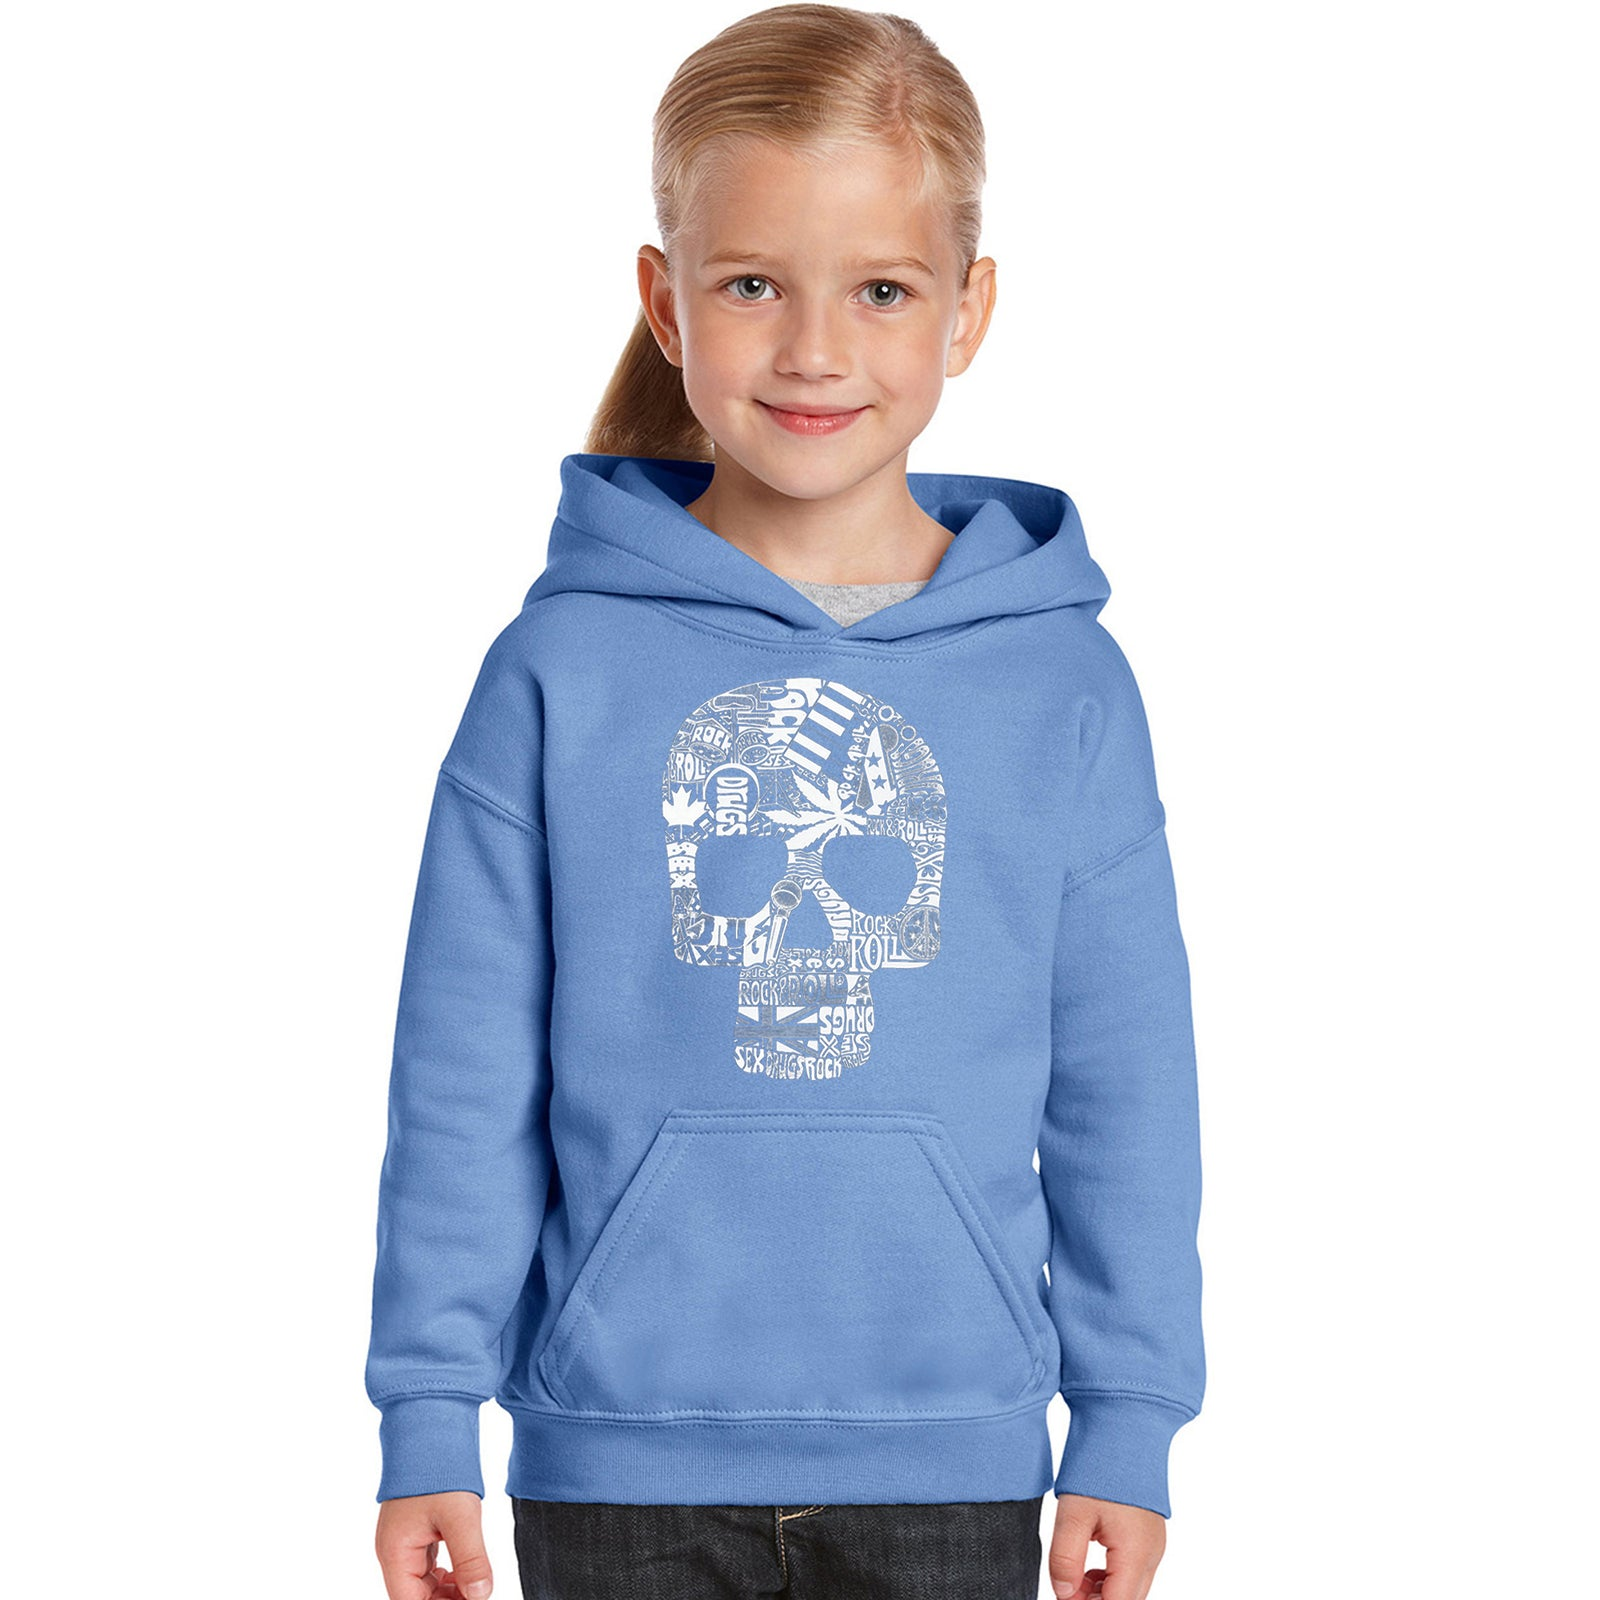 Girl's Hooded Sweatshirt - Sex, Drugs, Rock & Roll